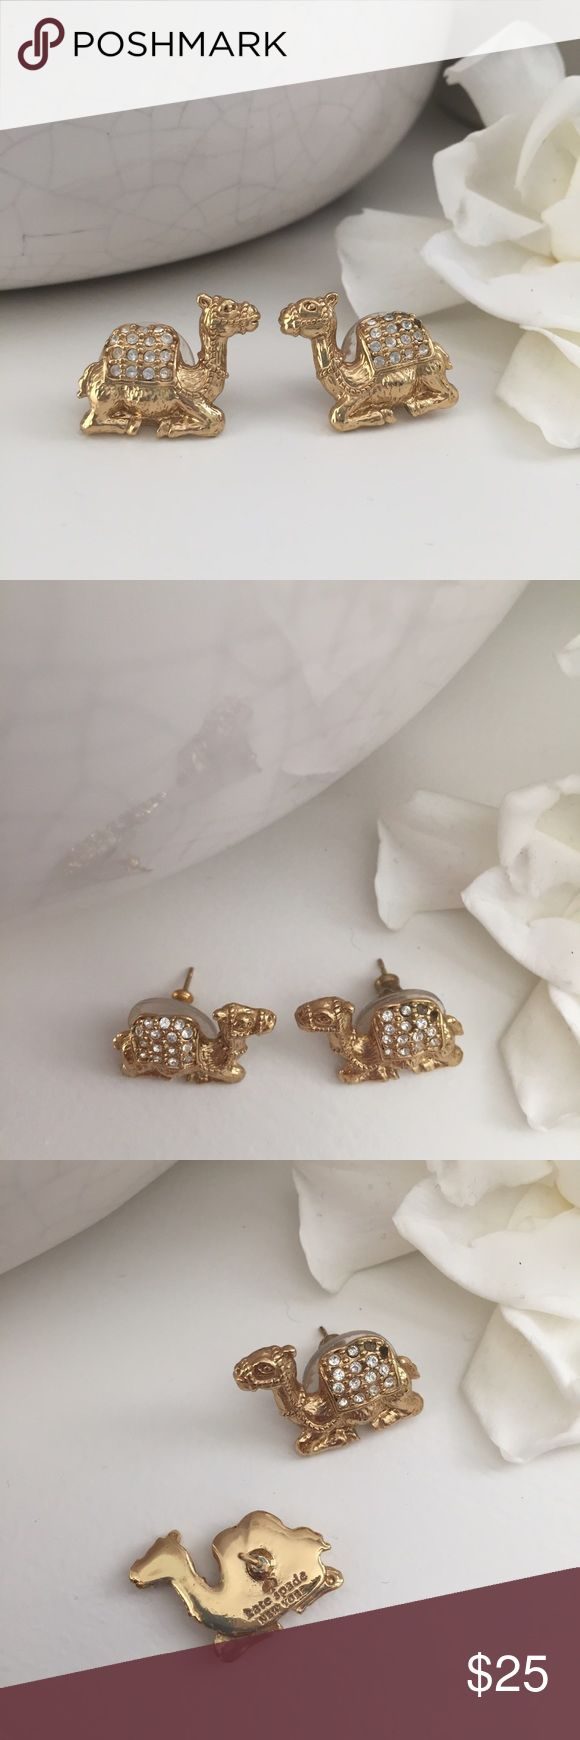 Kate Spade Camel Earrings Sweet Kate Spade camel earrings! Gold with crystal gems. Absolutely adorable! In excellent condition; no flaws. Post back. kate spade Jewelry Earrings